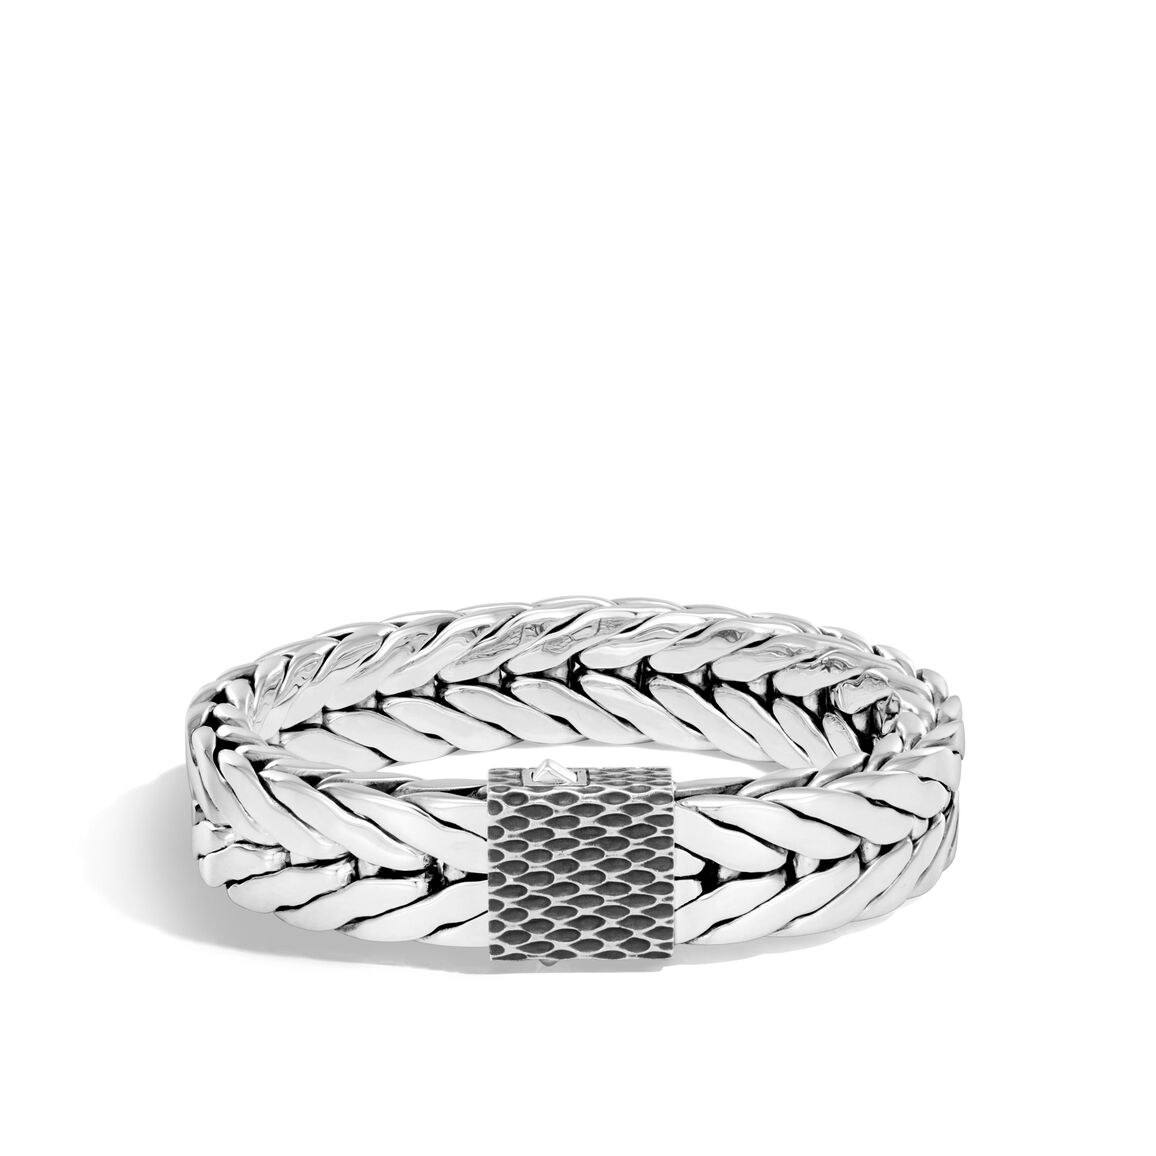 Legends Naga 16MM Modern Chain Bracelet in Silver